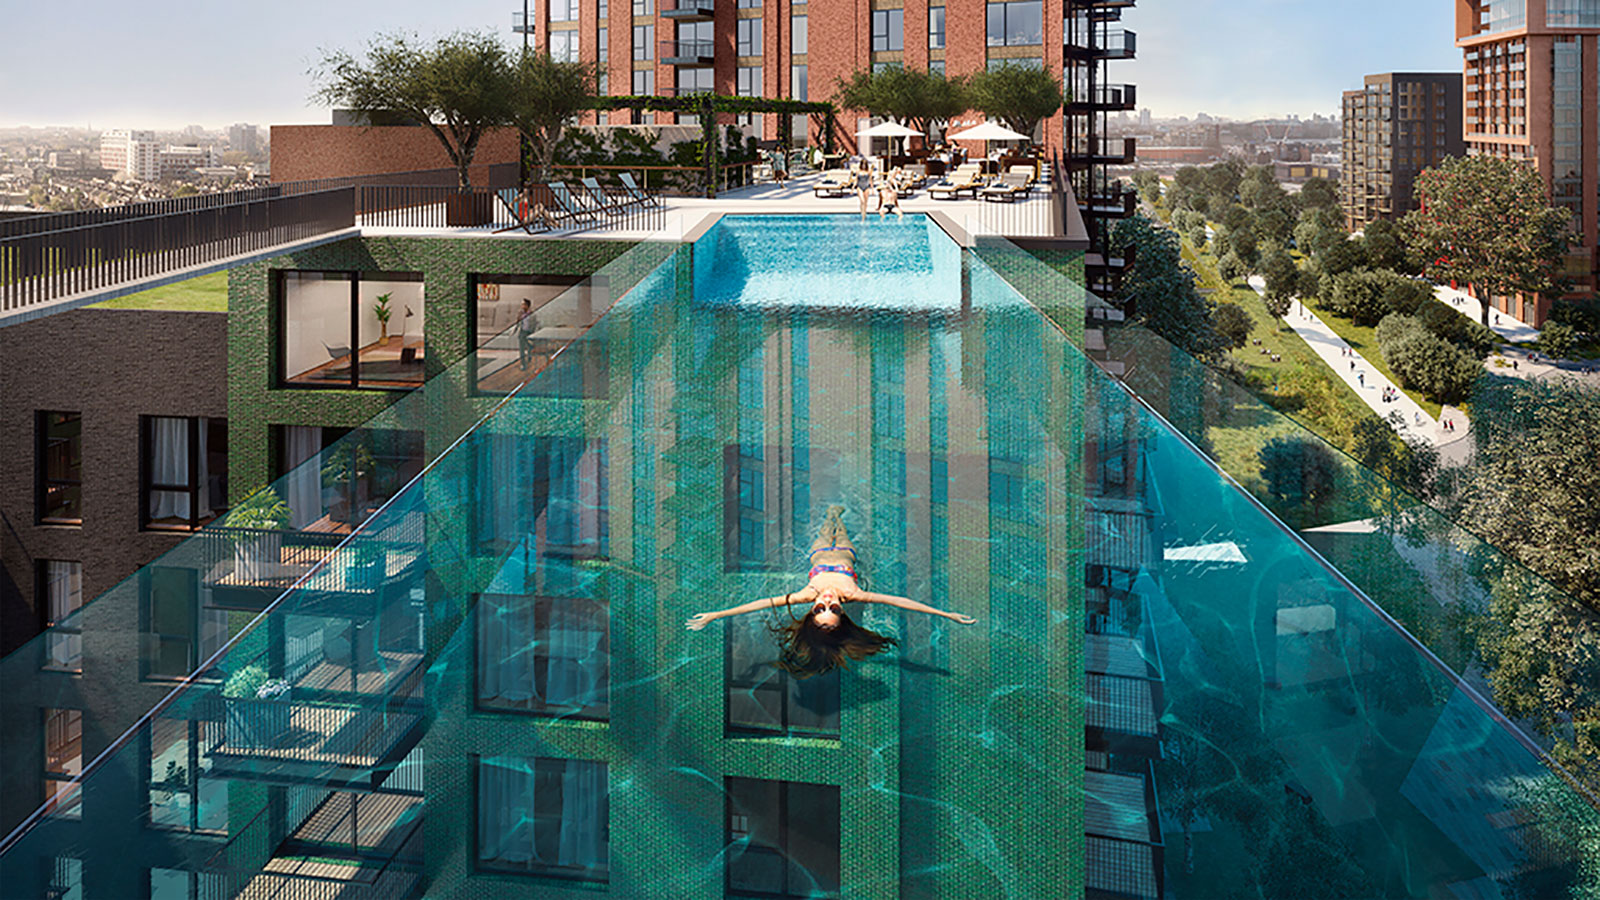 The London Sky Pool